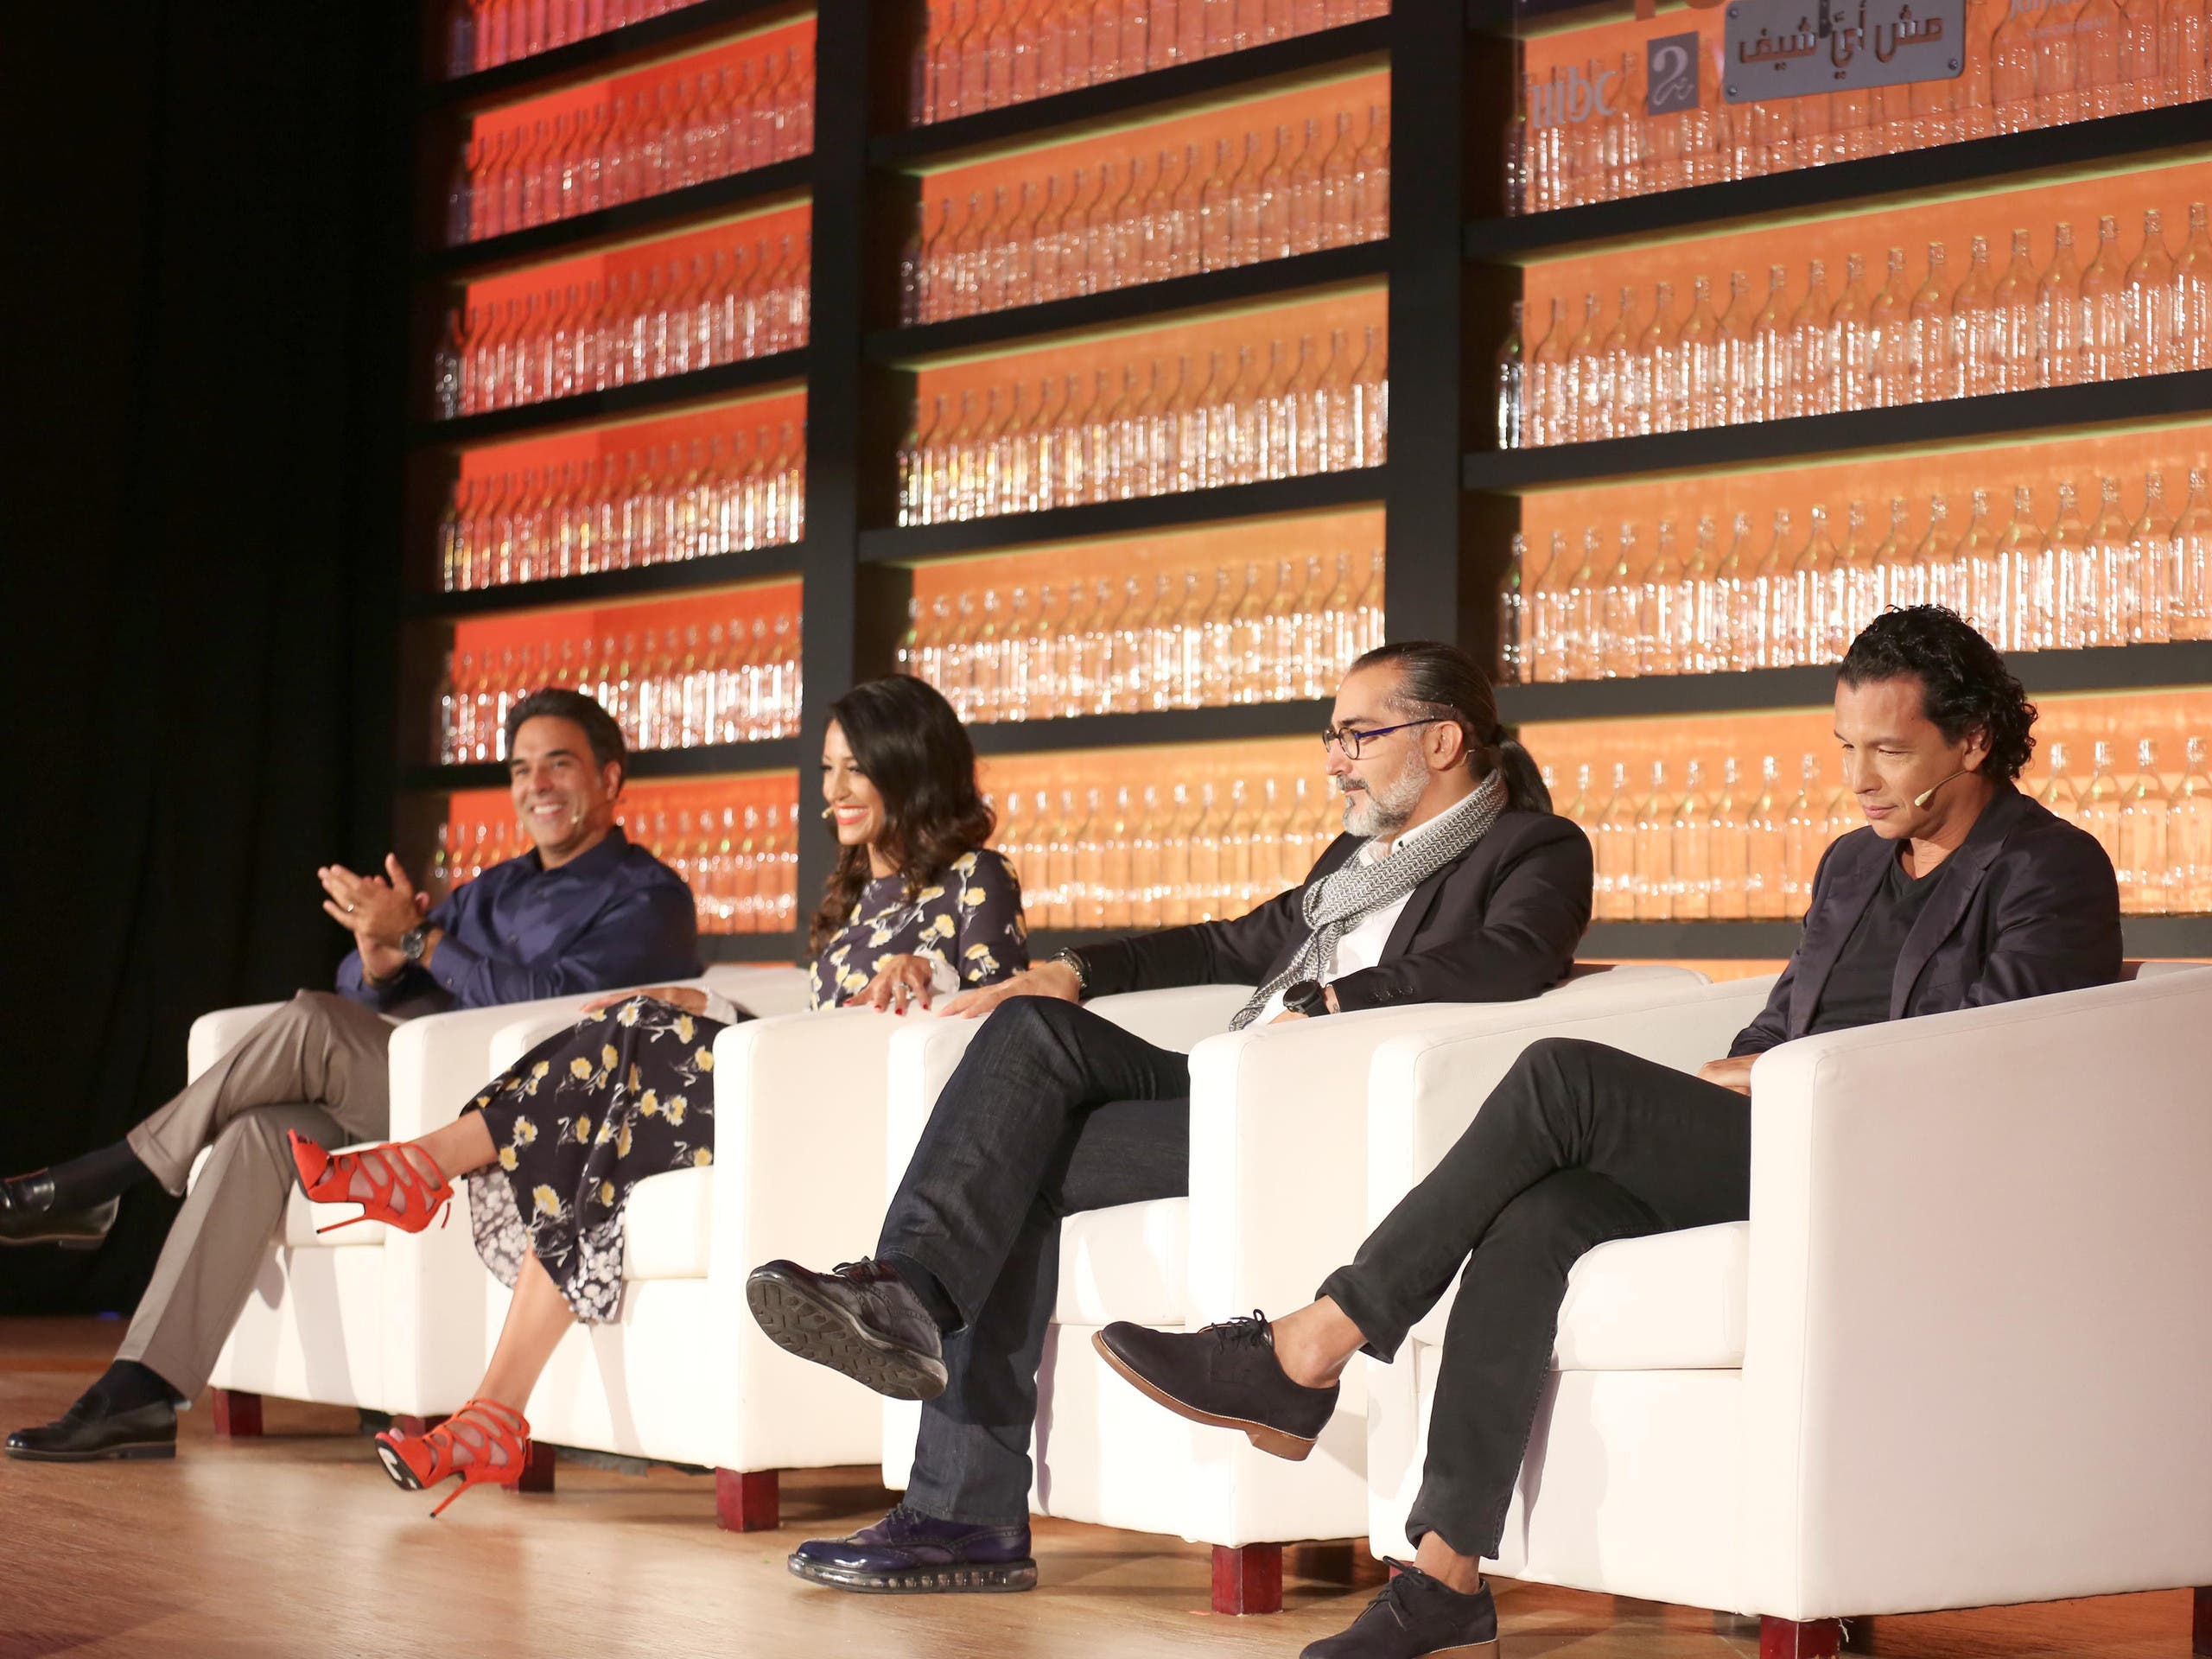 Top Chef Middle East press conference with (from left to right) MBC's Mazen Hayek, Mona Mosly, Maroun Chedid and Bobby Chinn. (MBC)